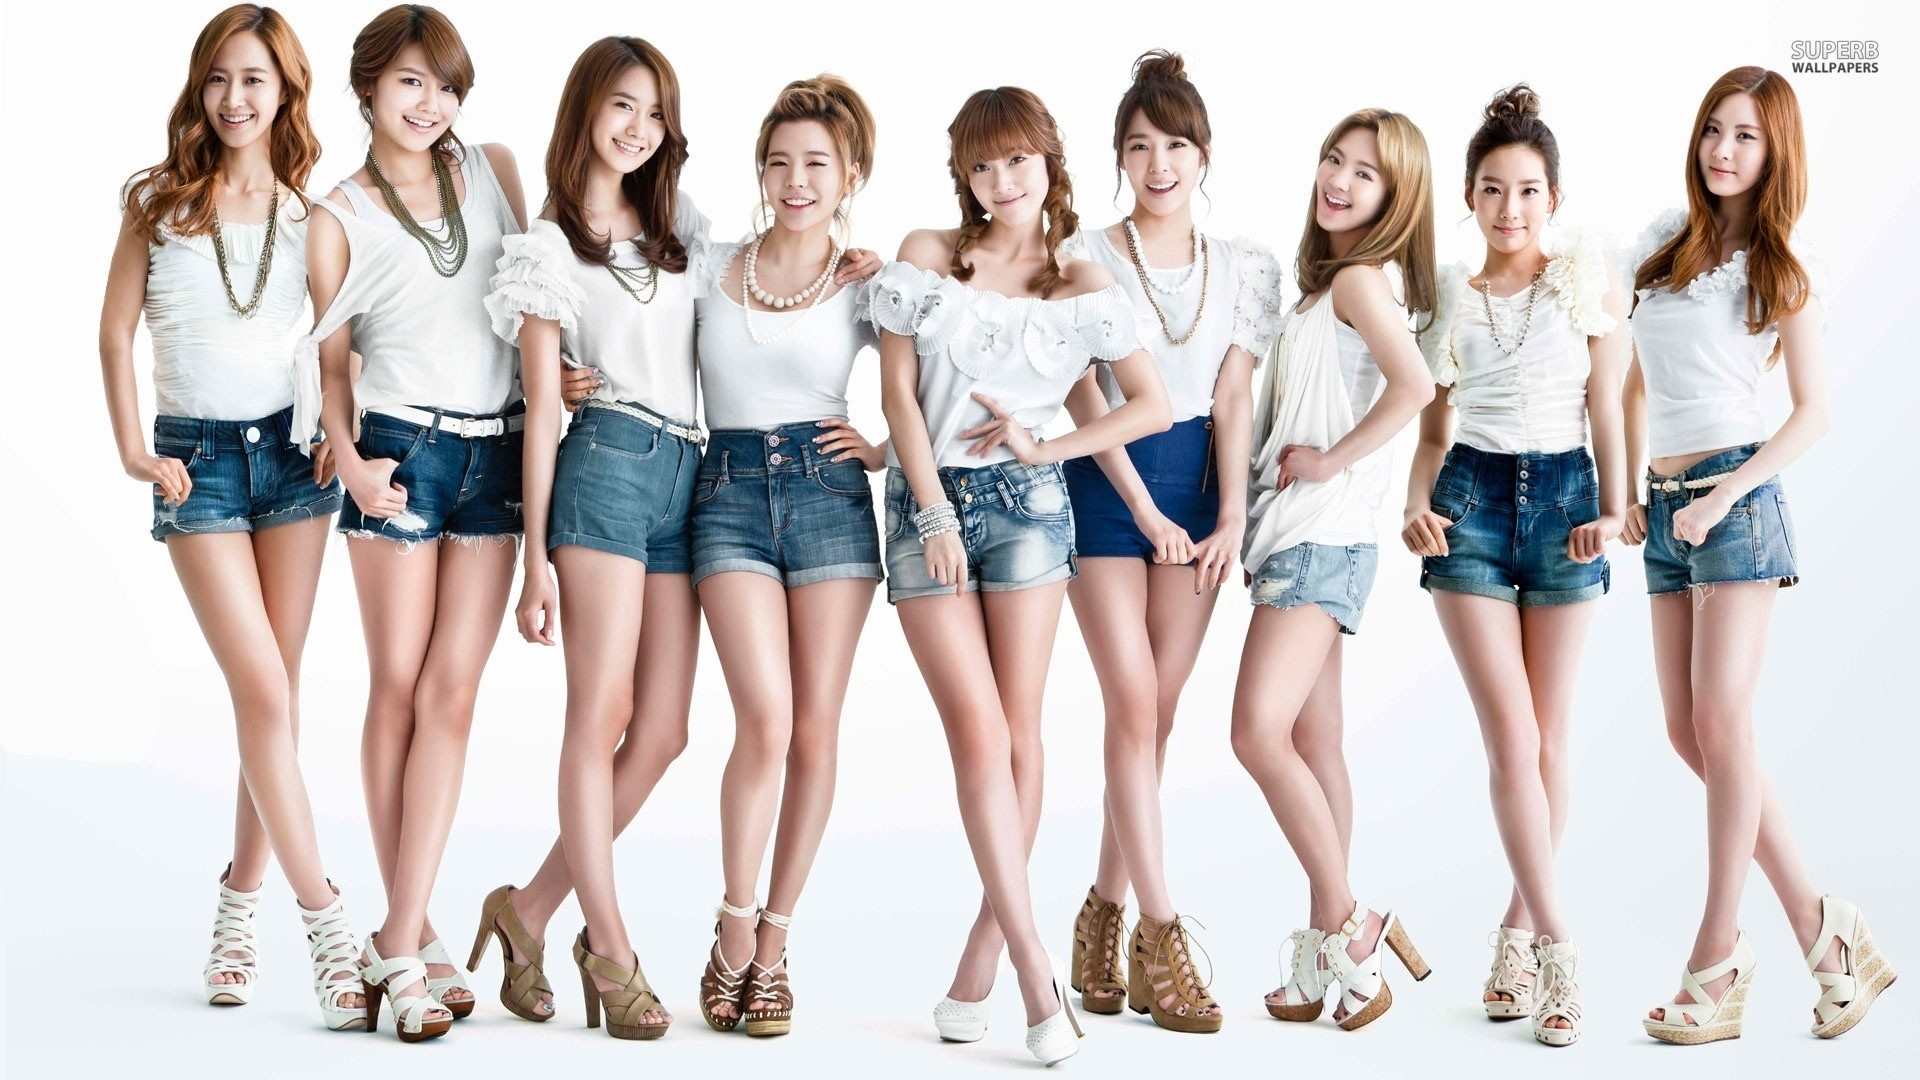 What Does SNSD Stand For? – What Is SNSD?